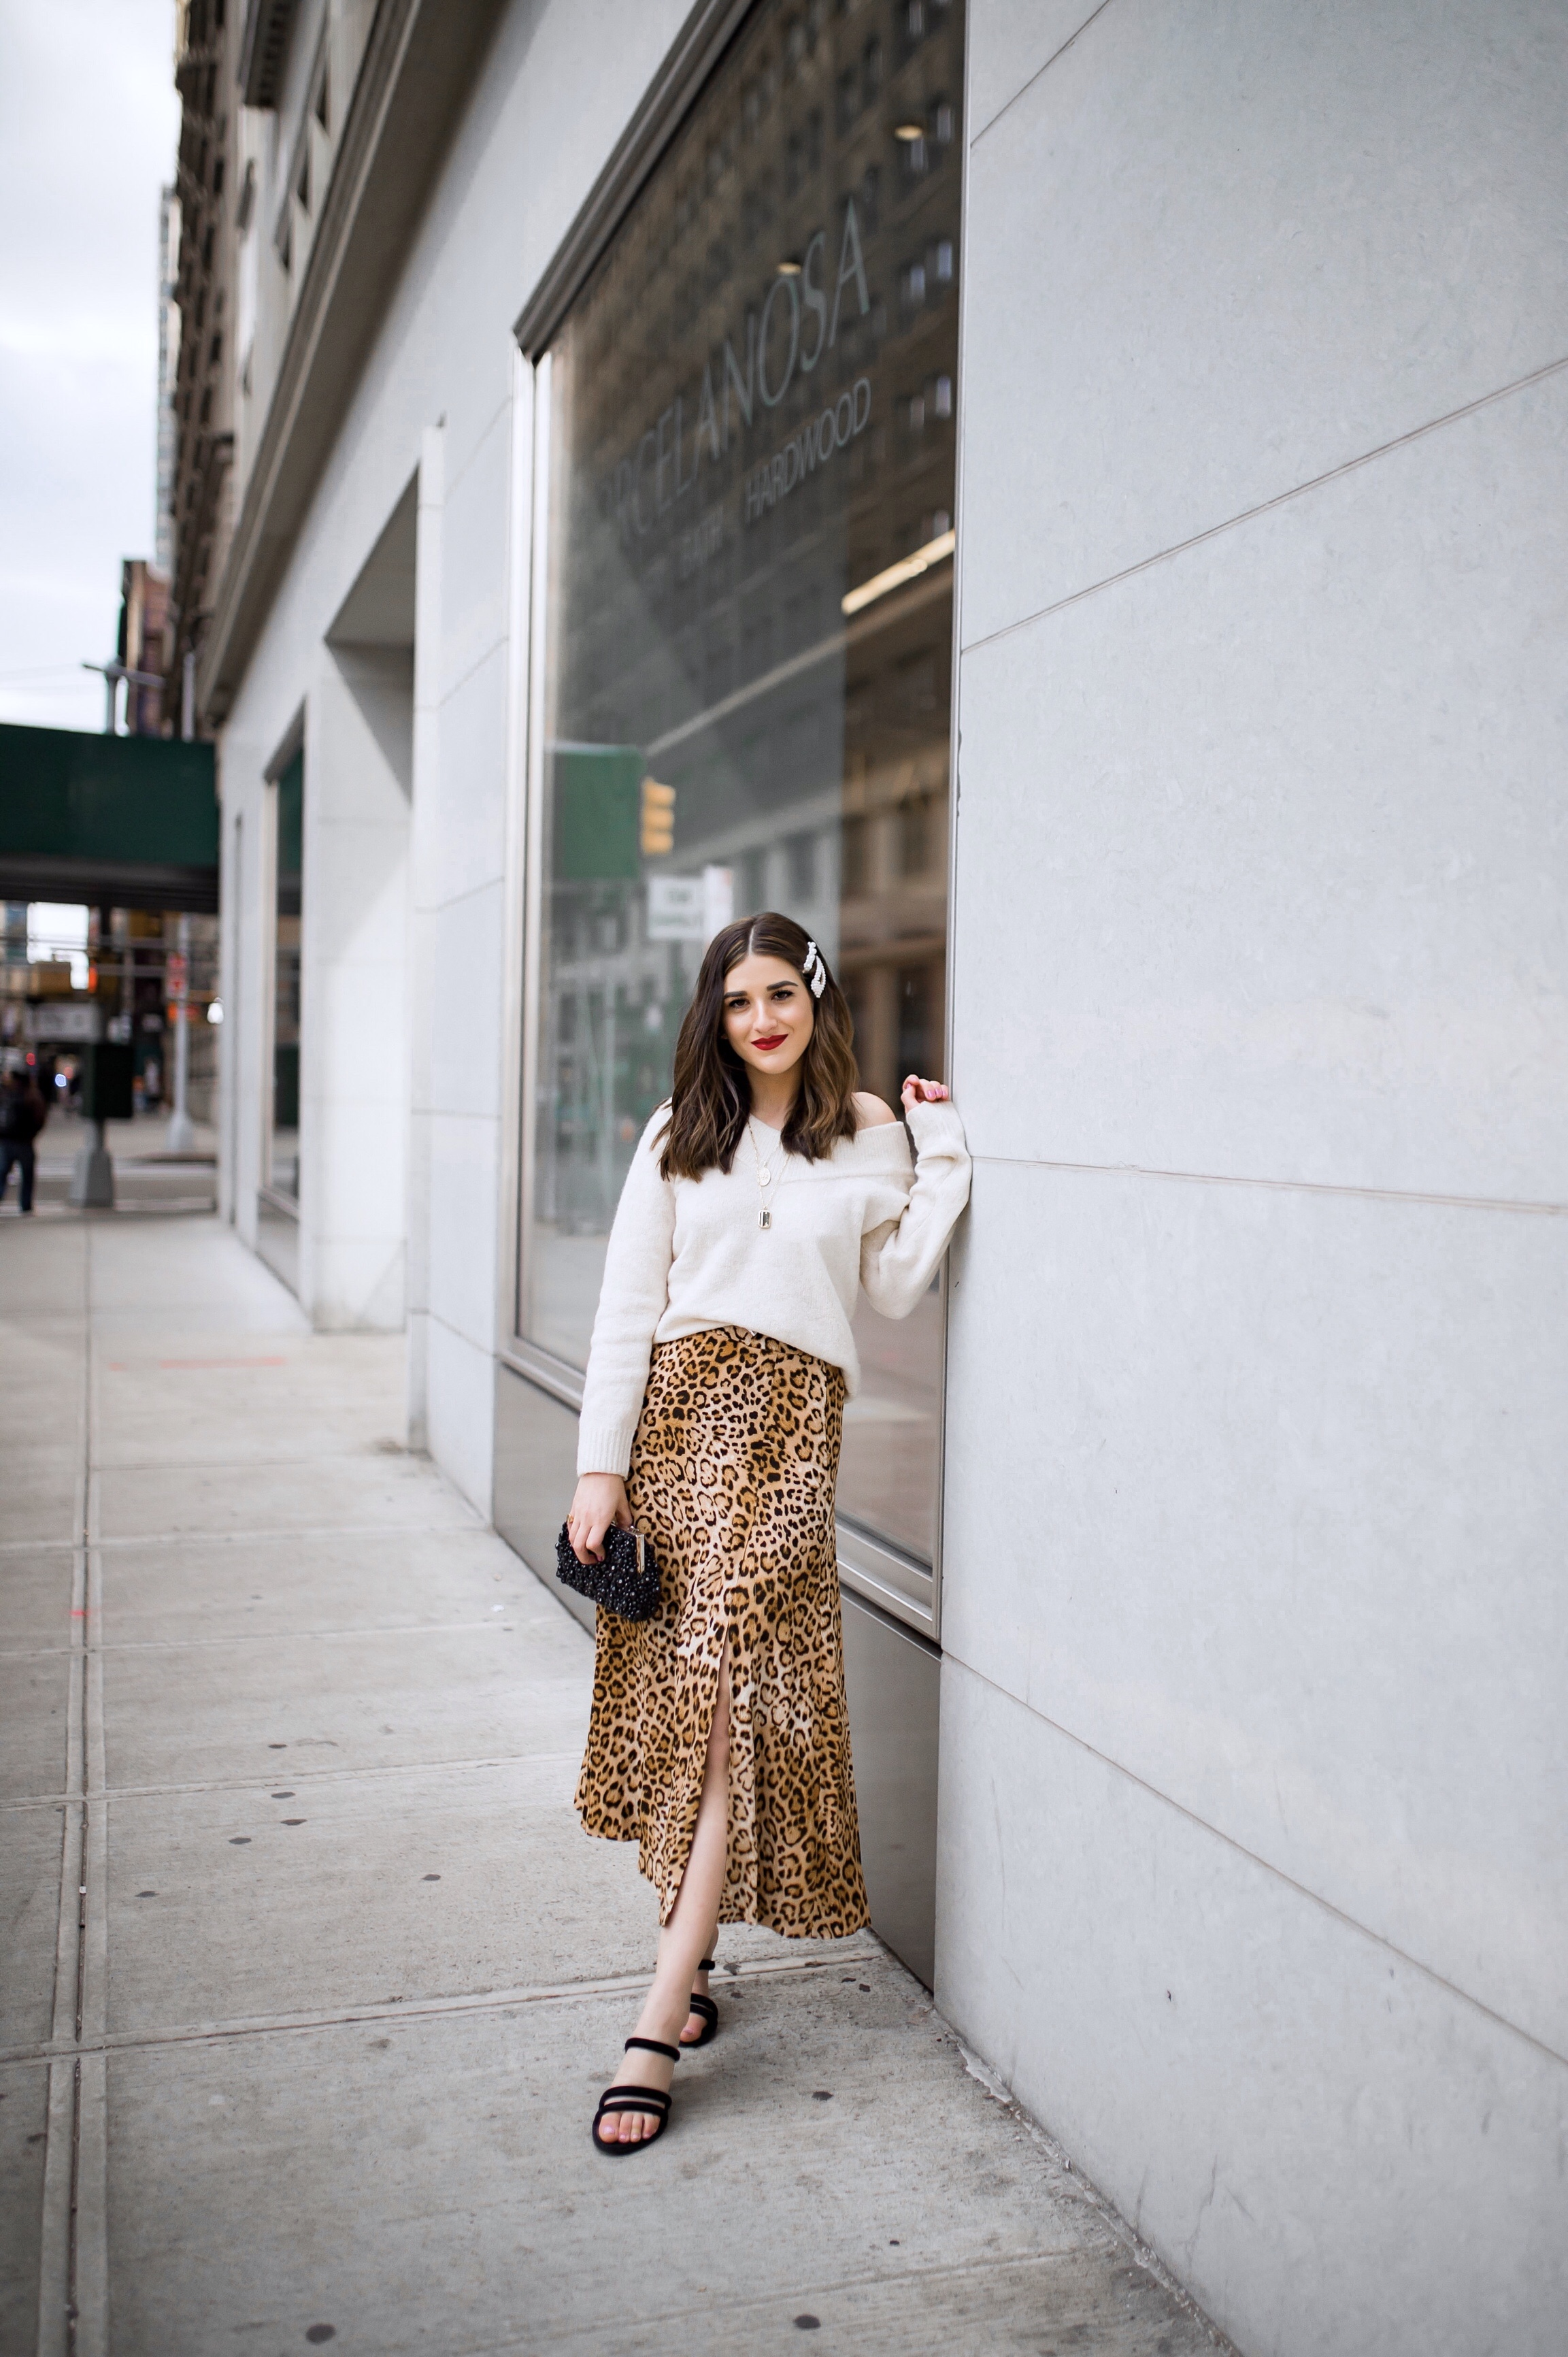 The Instagram Likes Debate Leopard Midi Skirt Beige Sweater Esther Santer Fashion Blog NYC Street Style Blogger Outfit OOTD Trendy Shopping Girl What Wear H&M Zara Pearl Barrettes Hair Clips Accessories Mules Beaded Clutch Spring Necklaces Bag Sandals.jpg